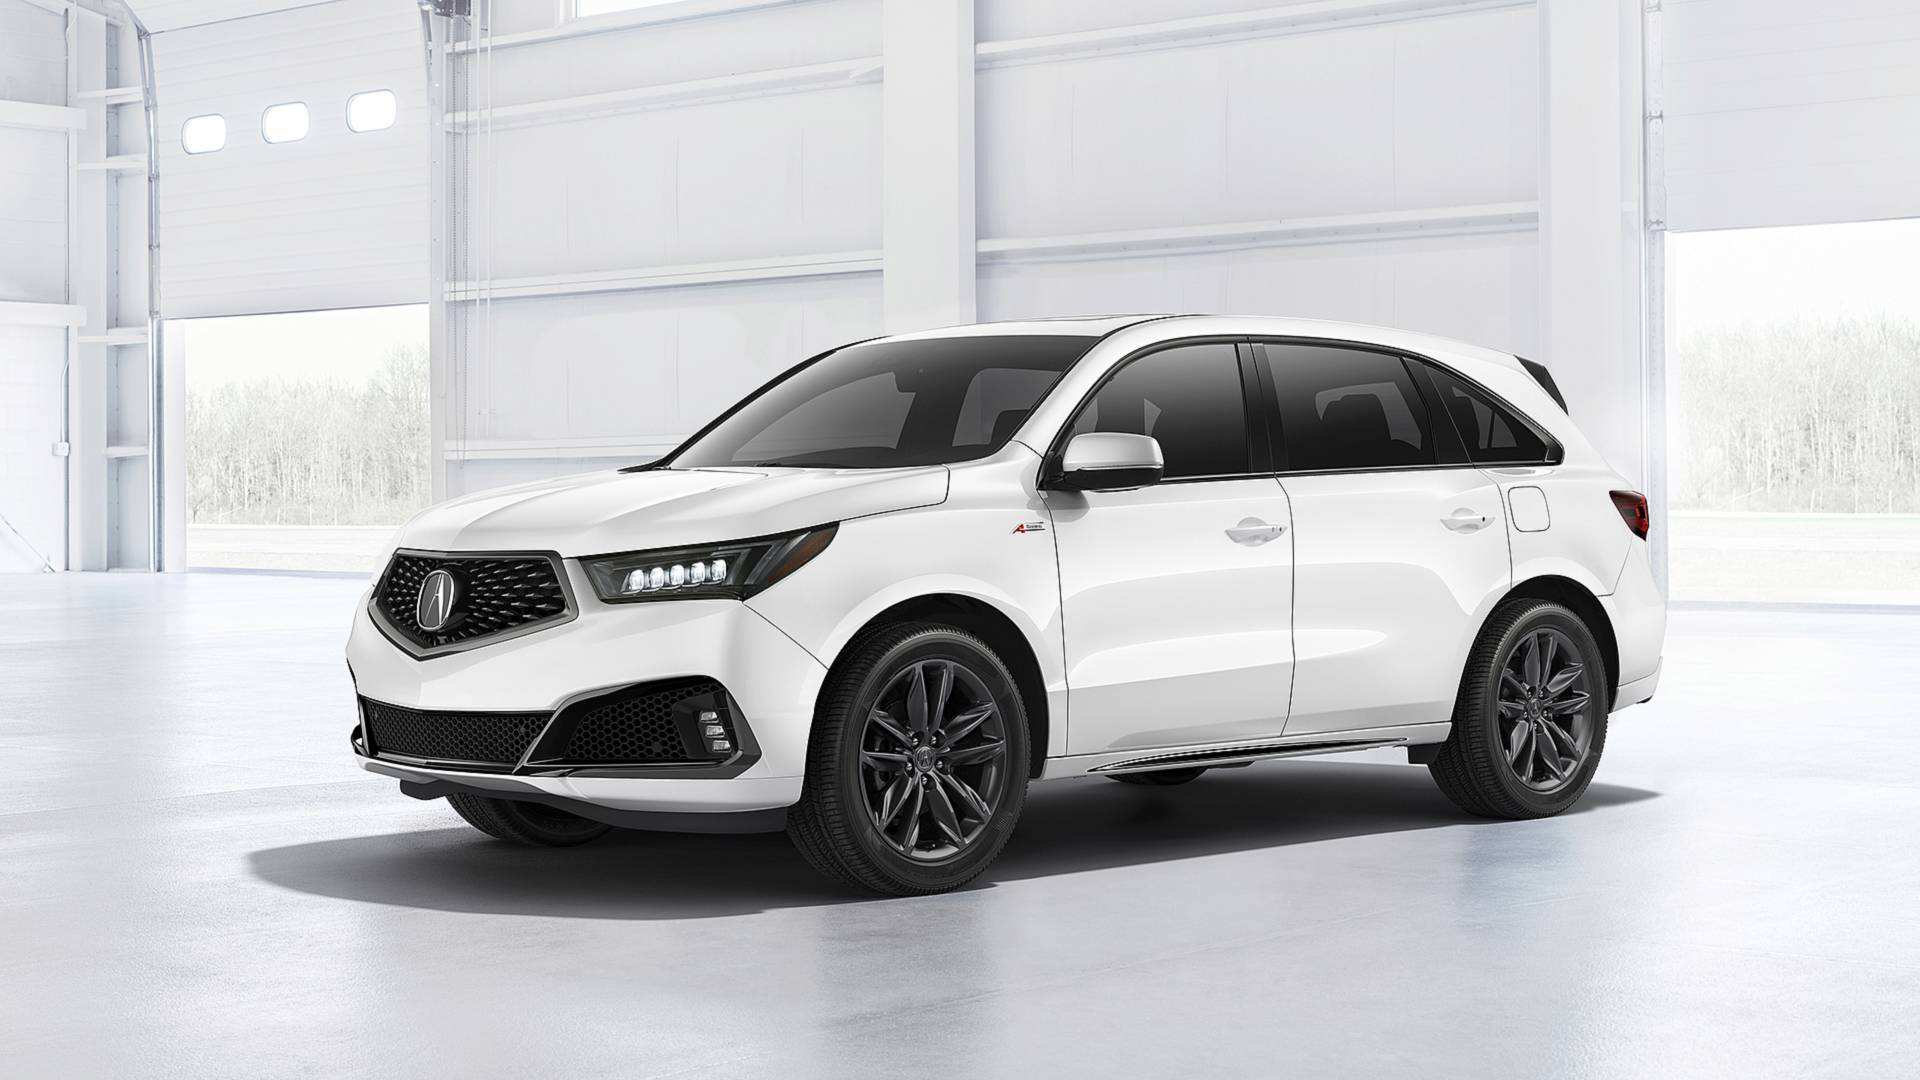 25 All New Honda Mdx 2020 Picture